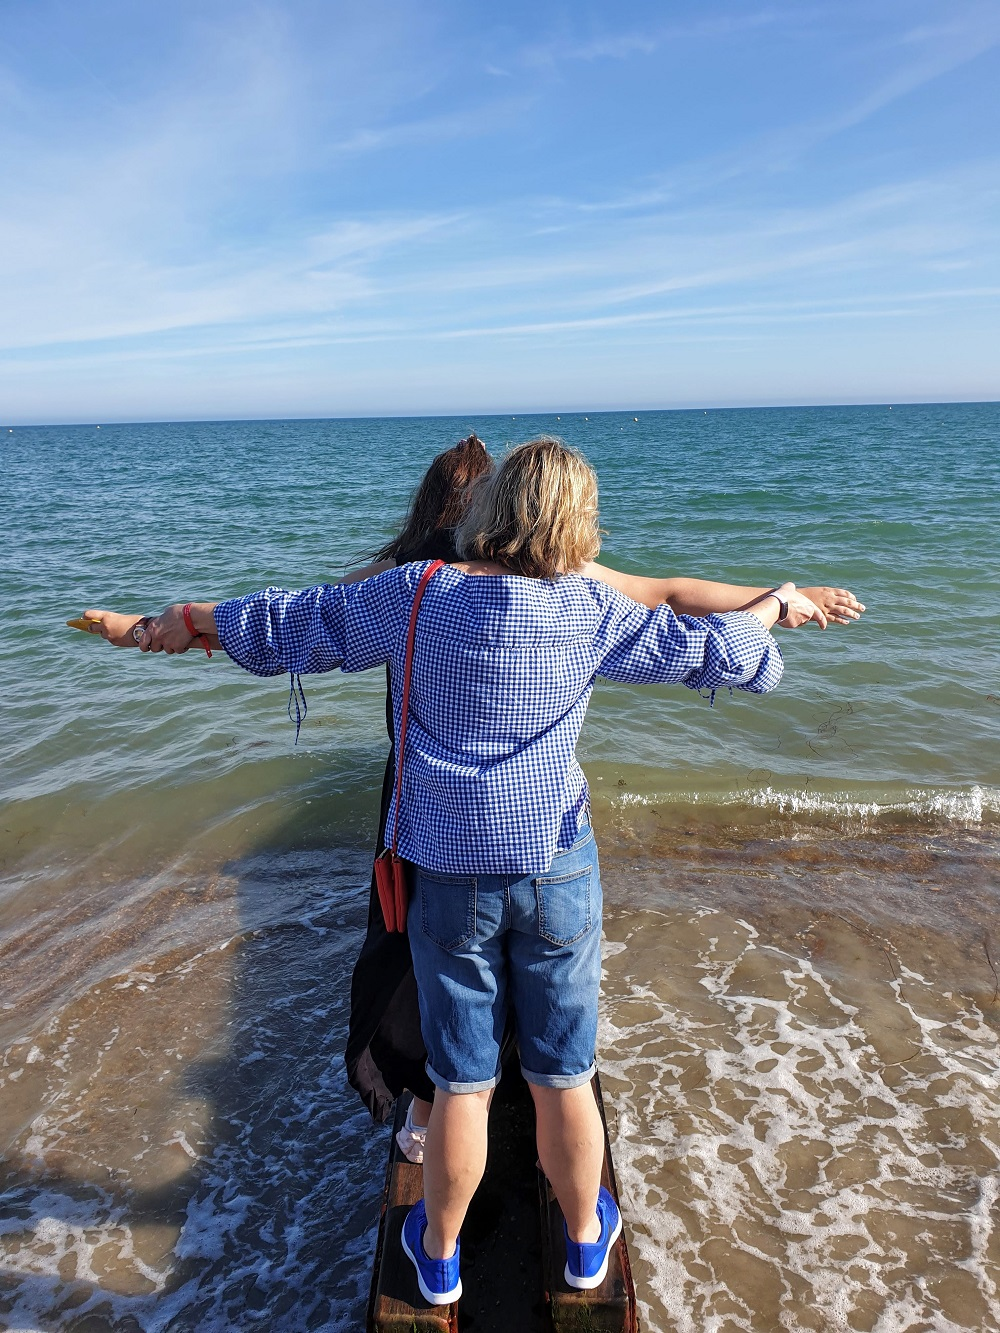 Checked Shirt, Holiday Fun And A Titanic Pose #LinkUp